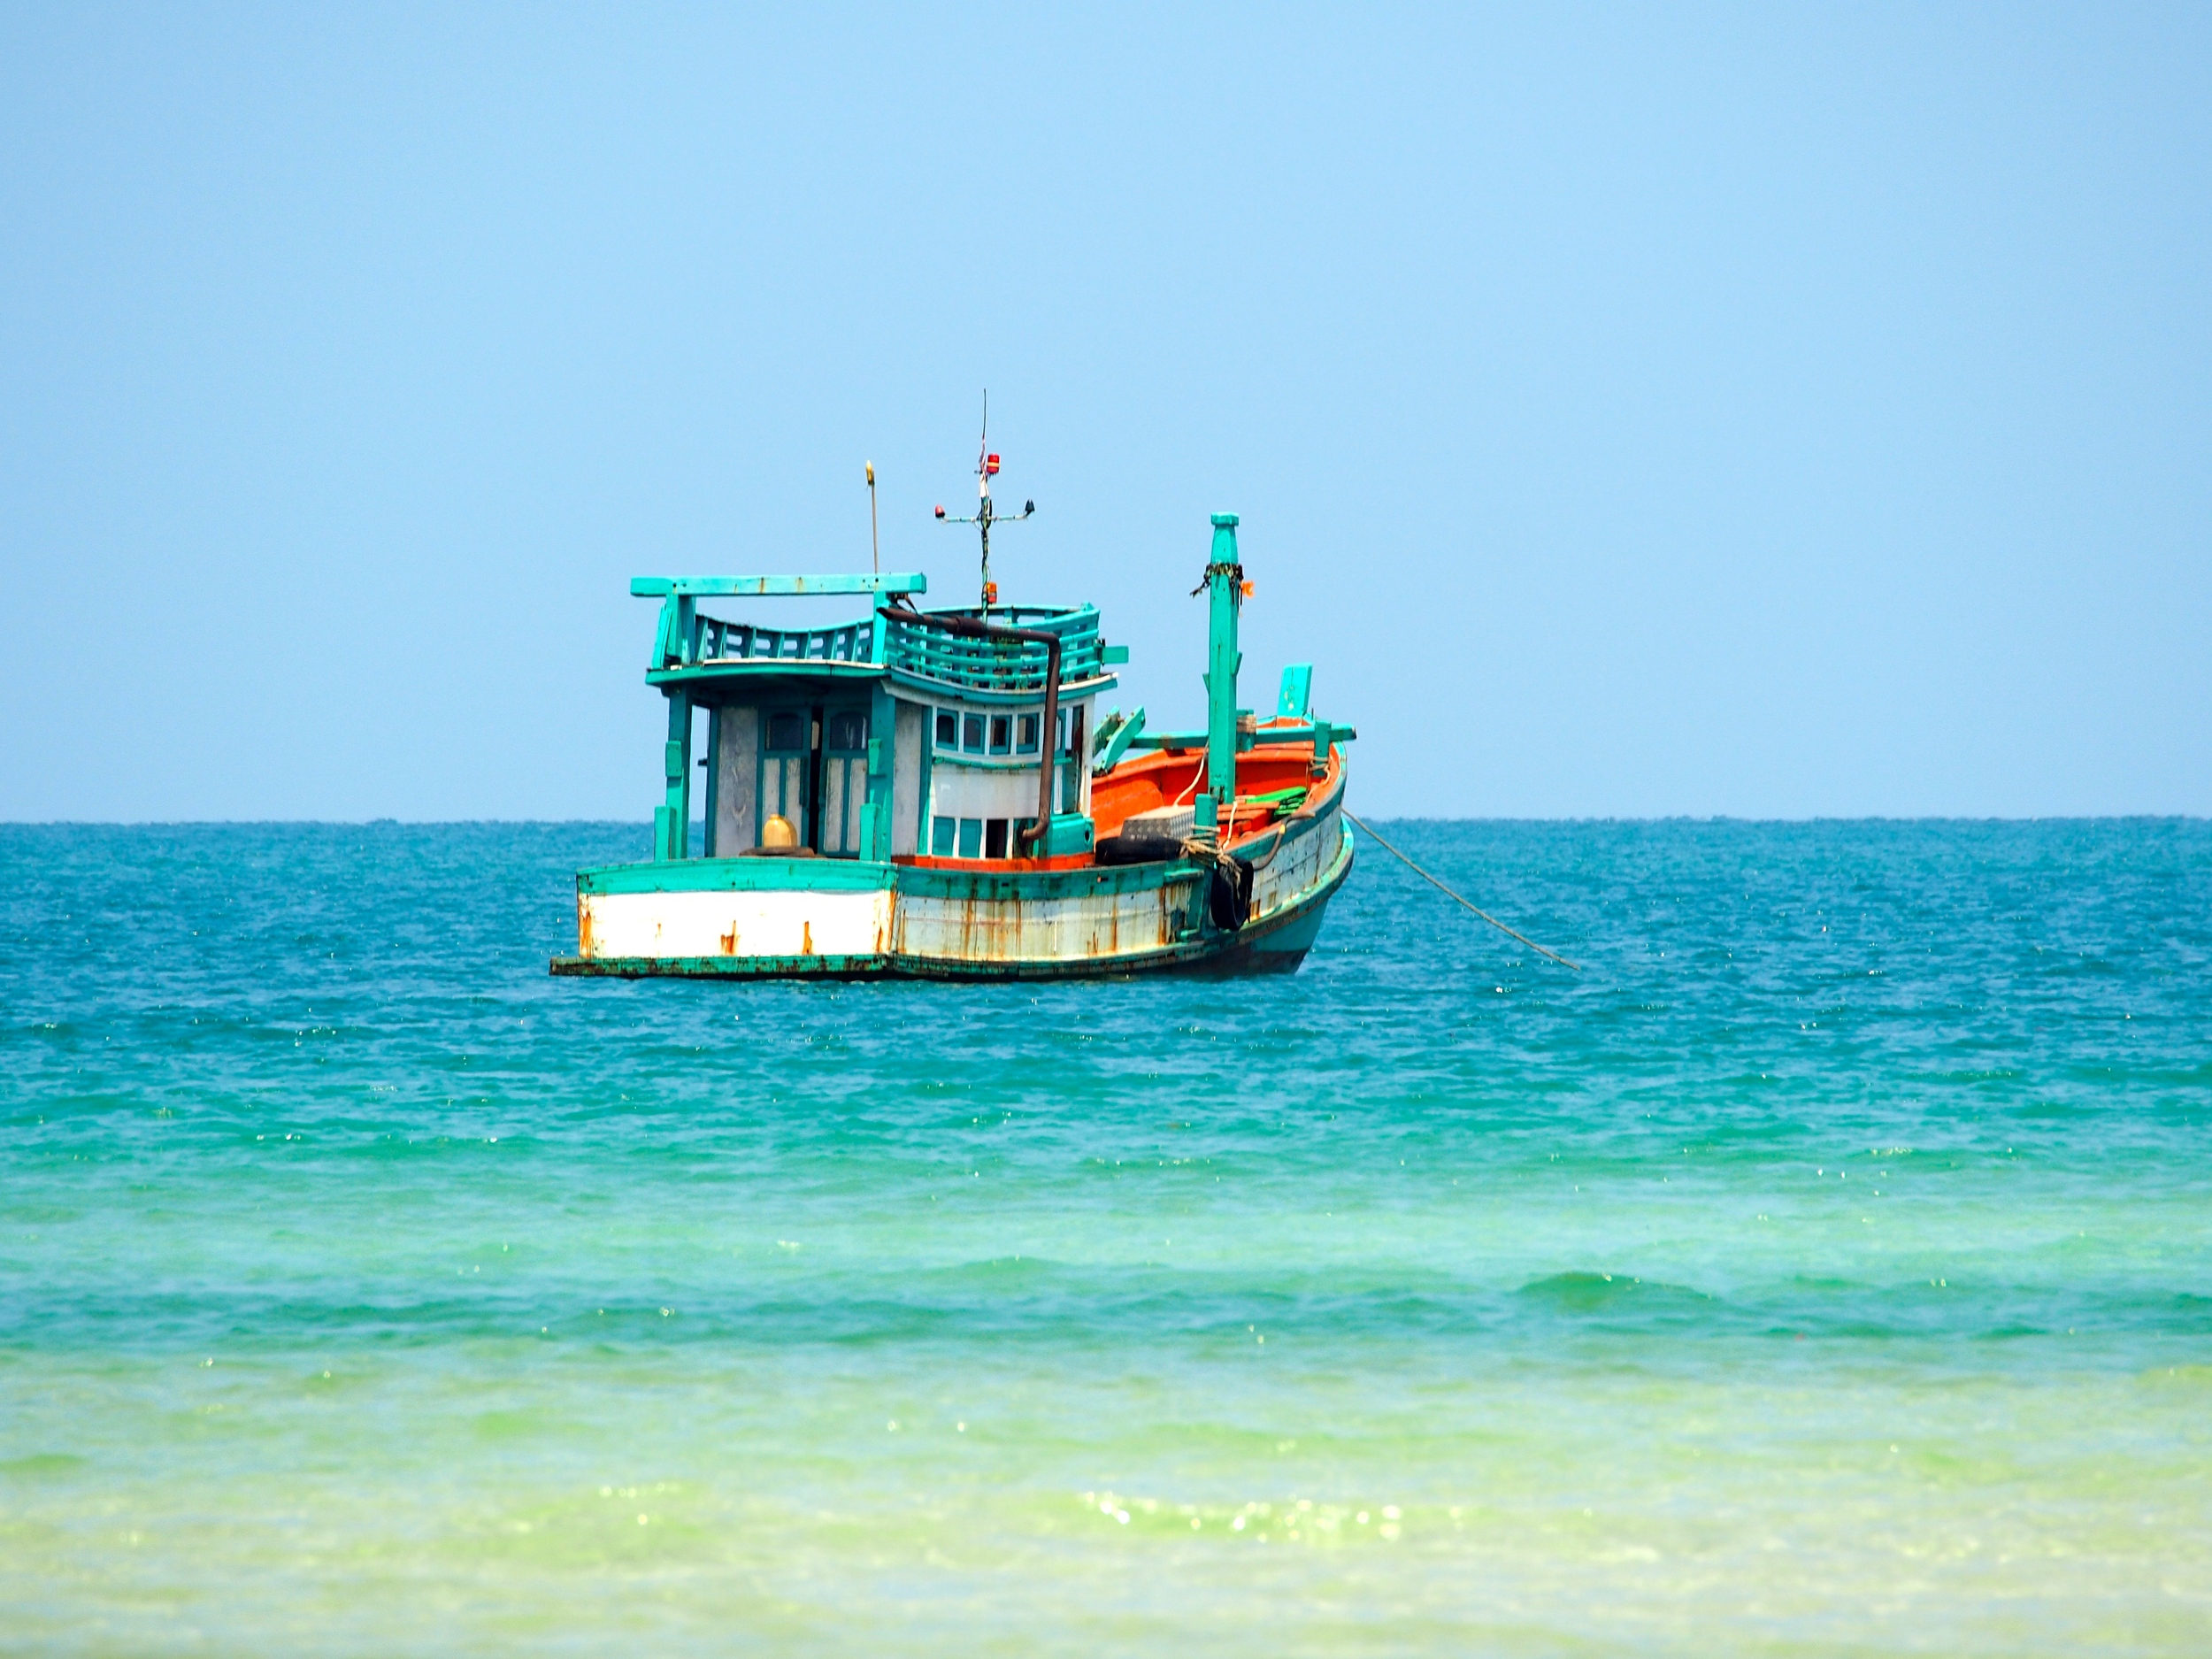 TMCP_Community_A fishing boat travels through the quiet waters of Koh Rong island.JPG